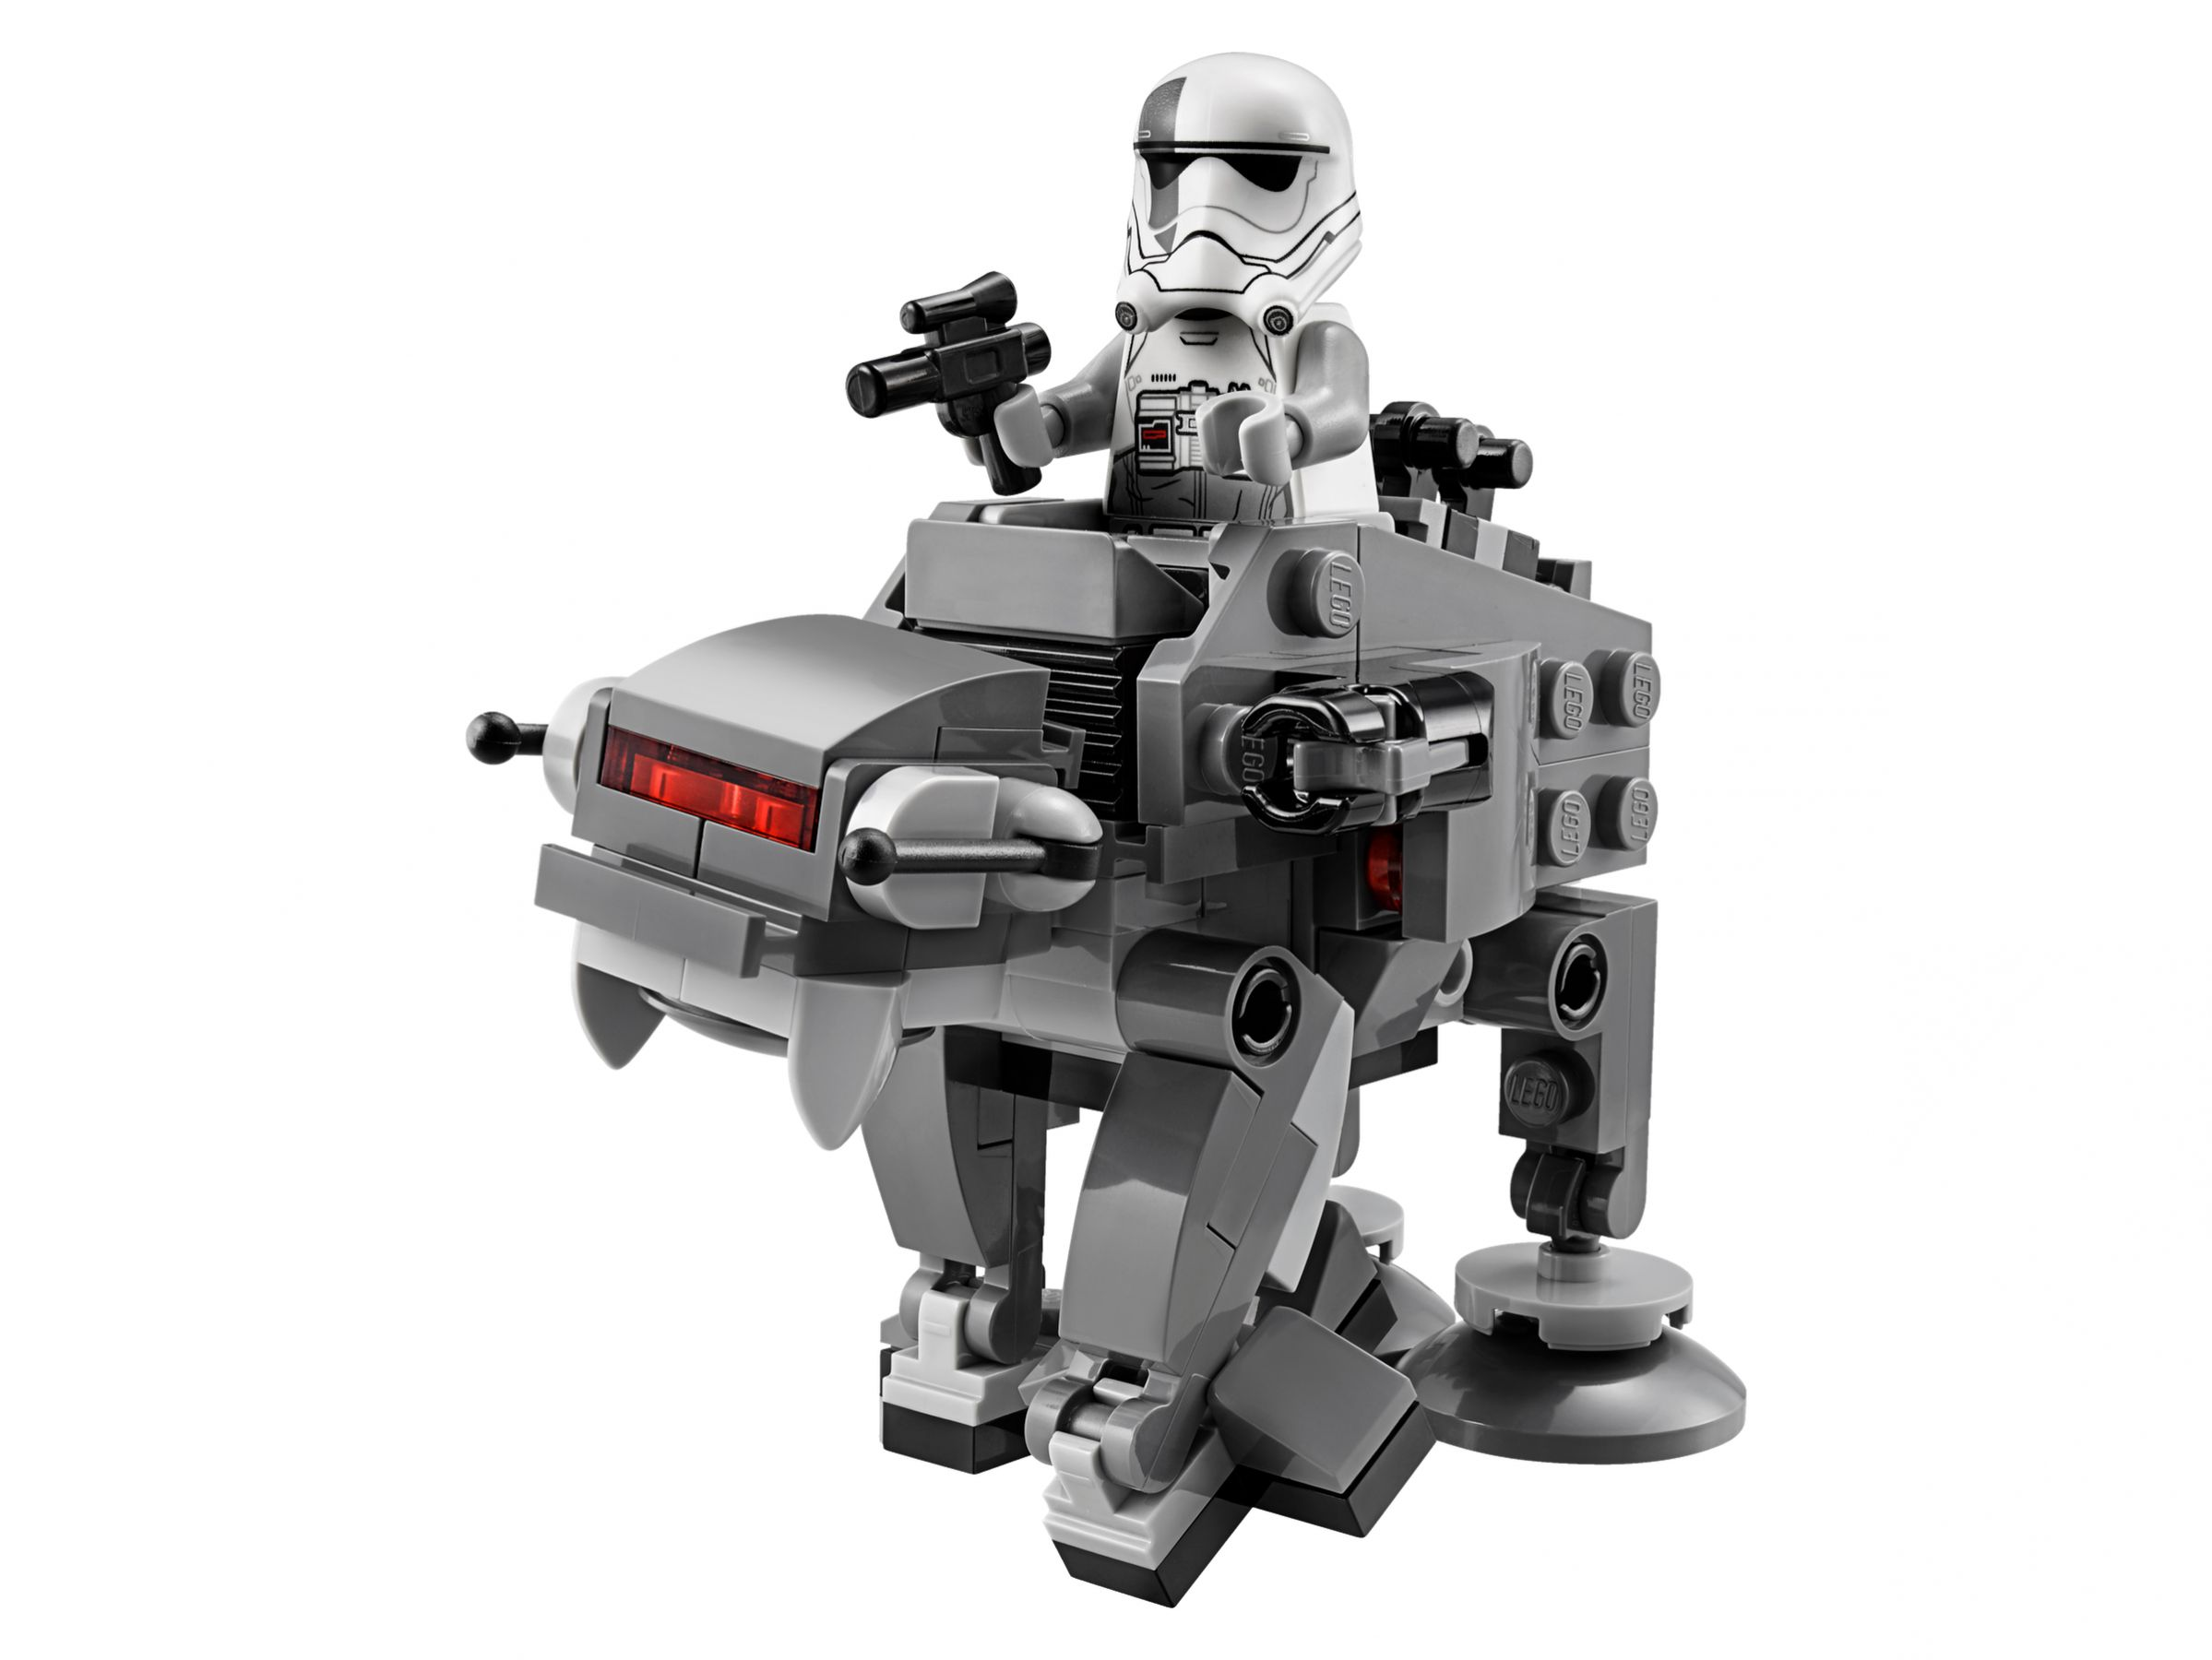 LEGO Star Wars 75195 Ski Speeder™ vs. First Order Walker™ Microfighters LEGO_75195_alt4.jpg